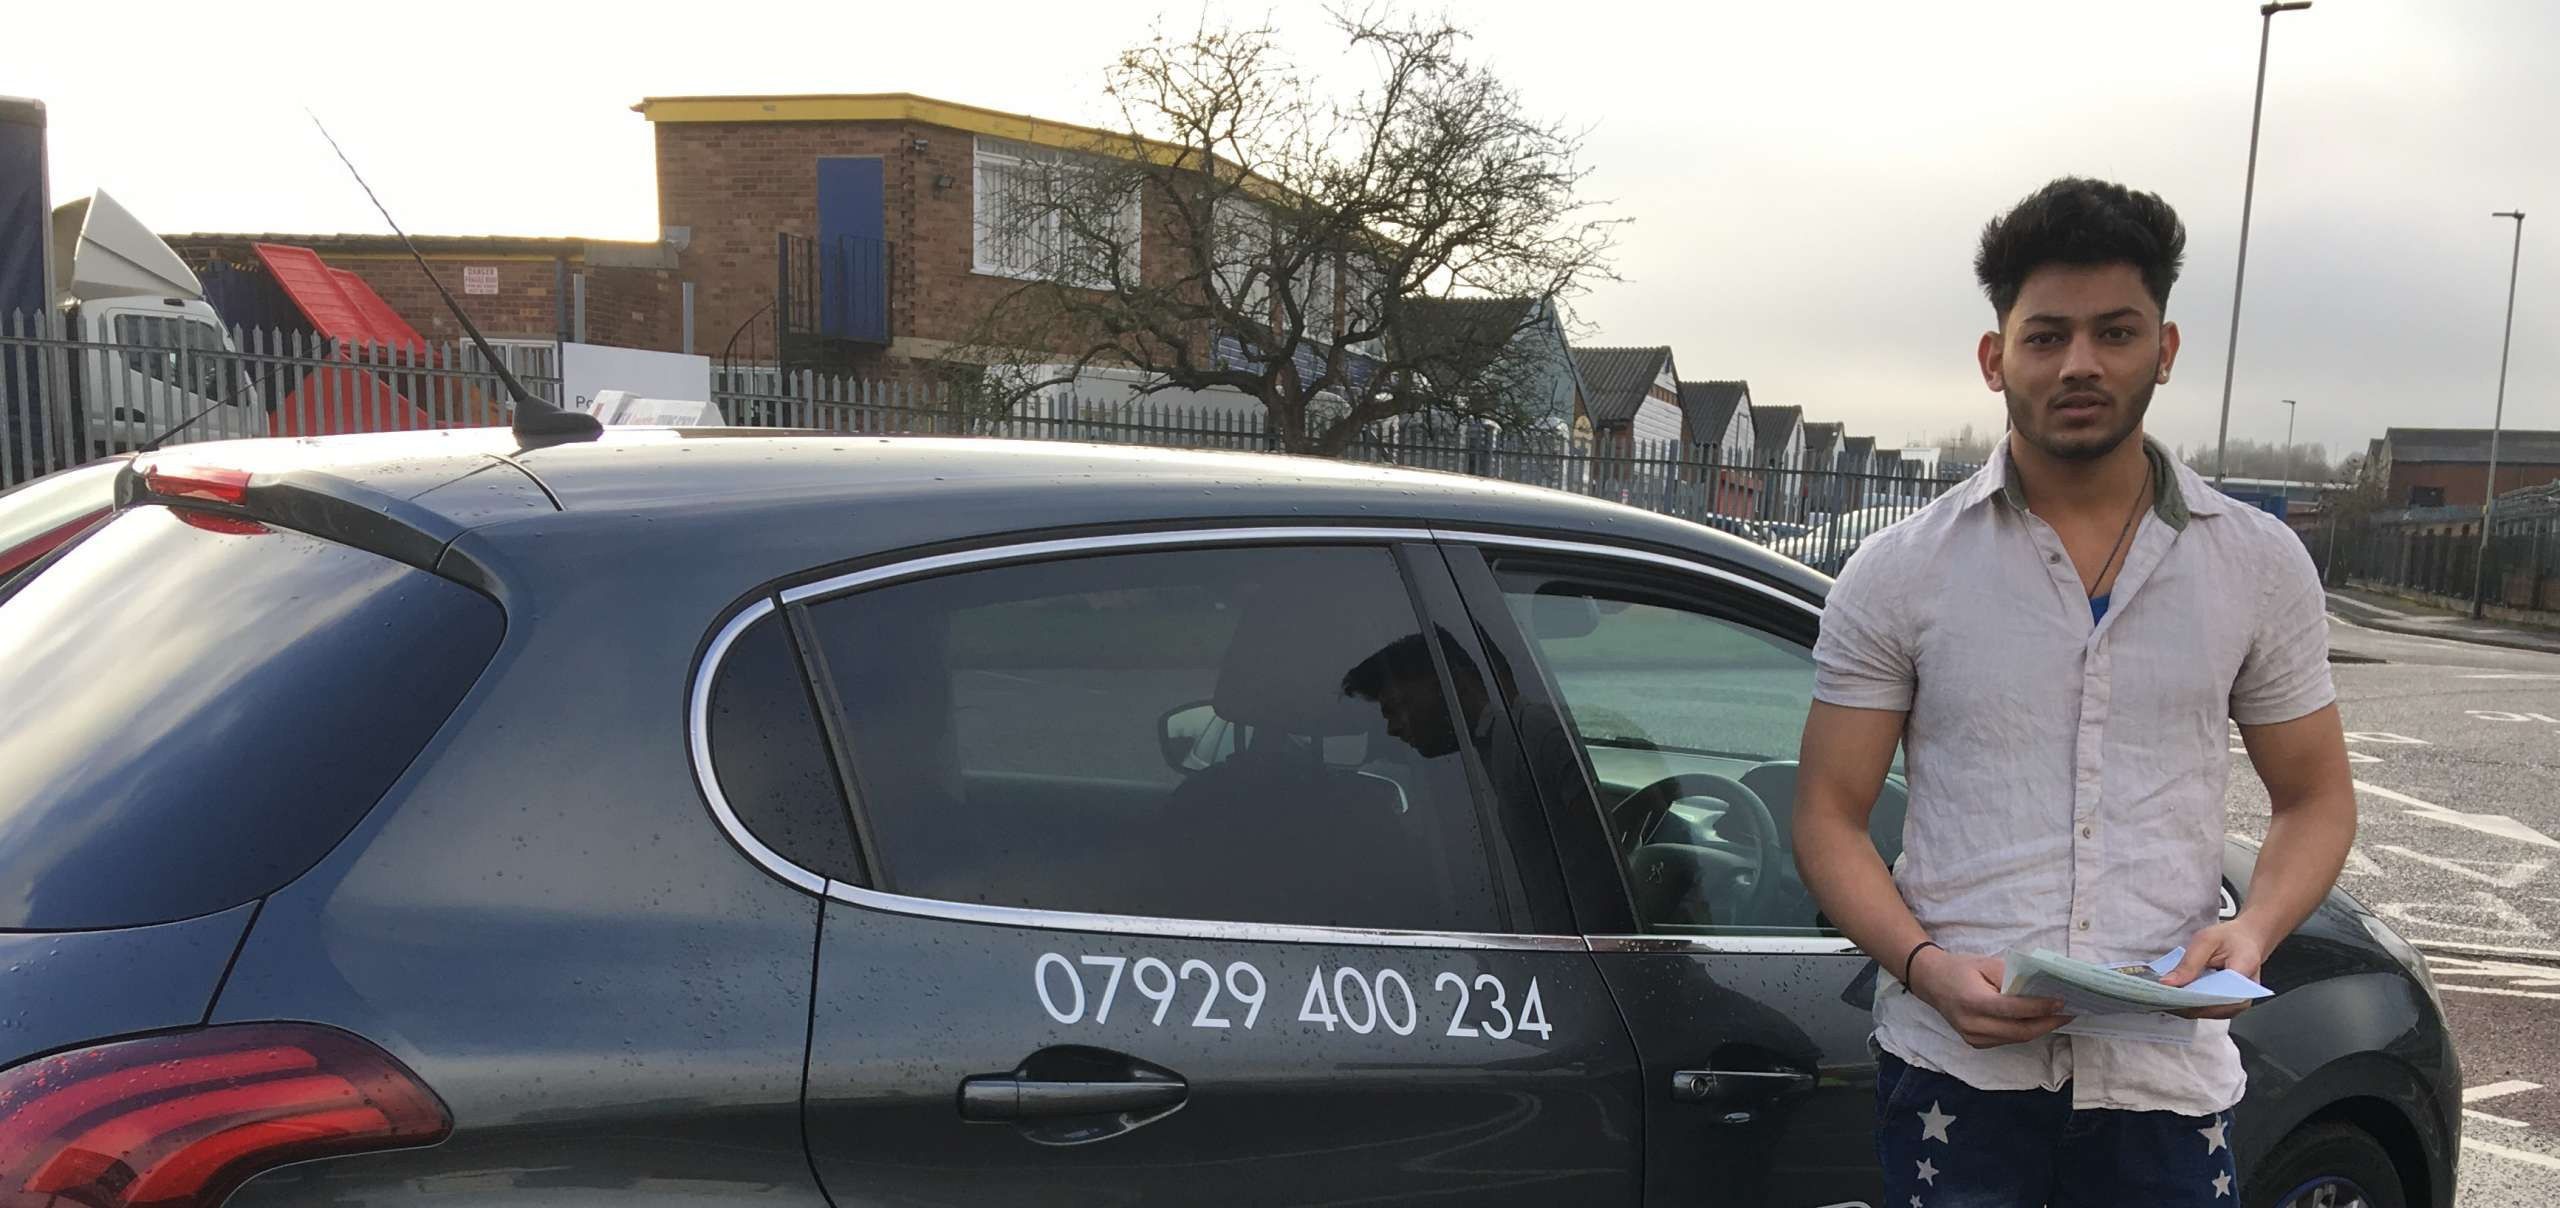 driving lessons leicester - Panchal Driving Academy - Devang